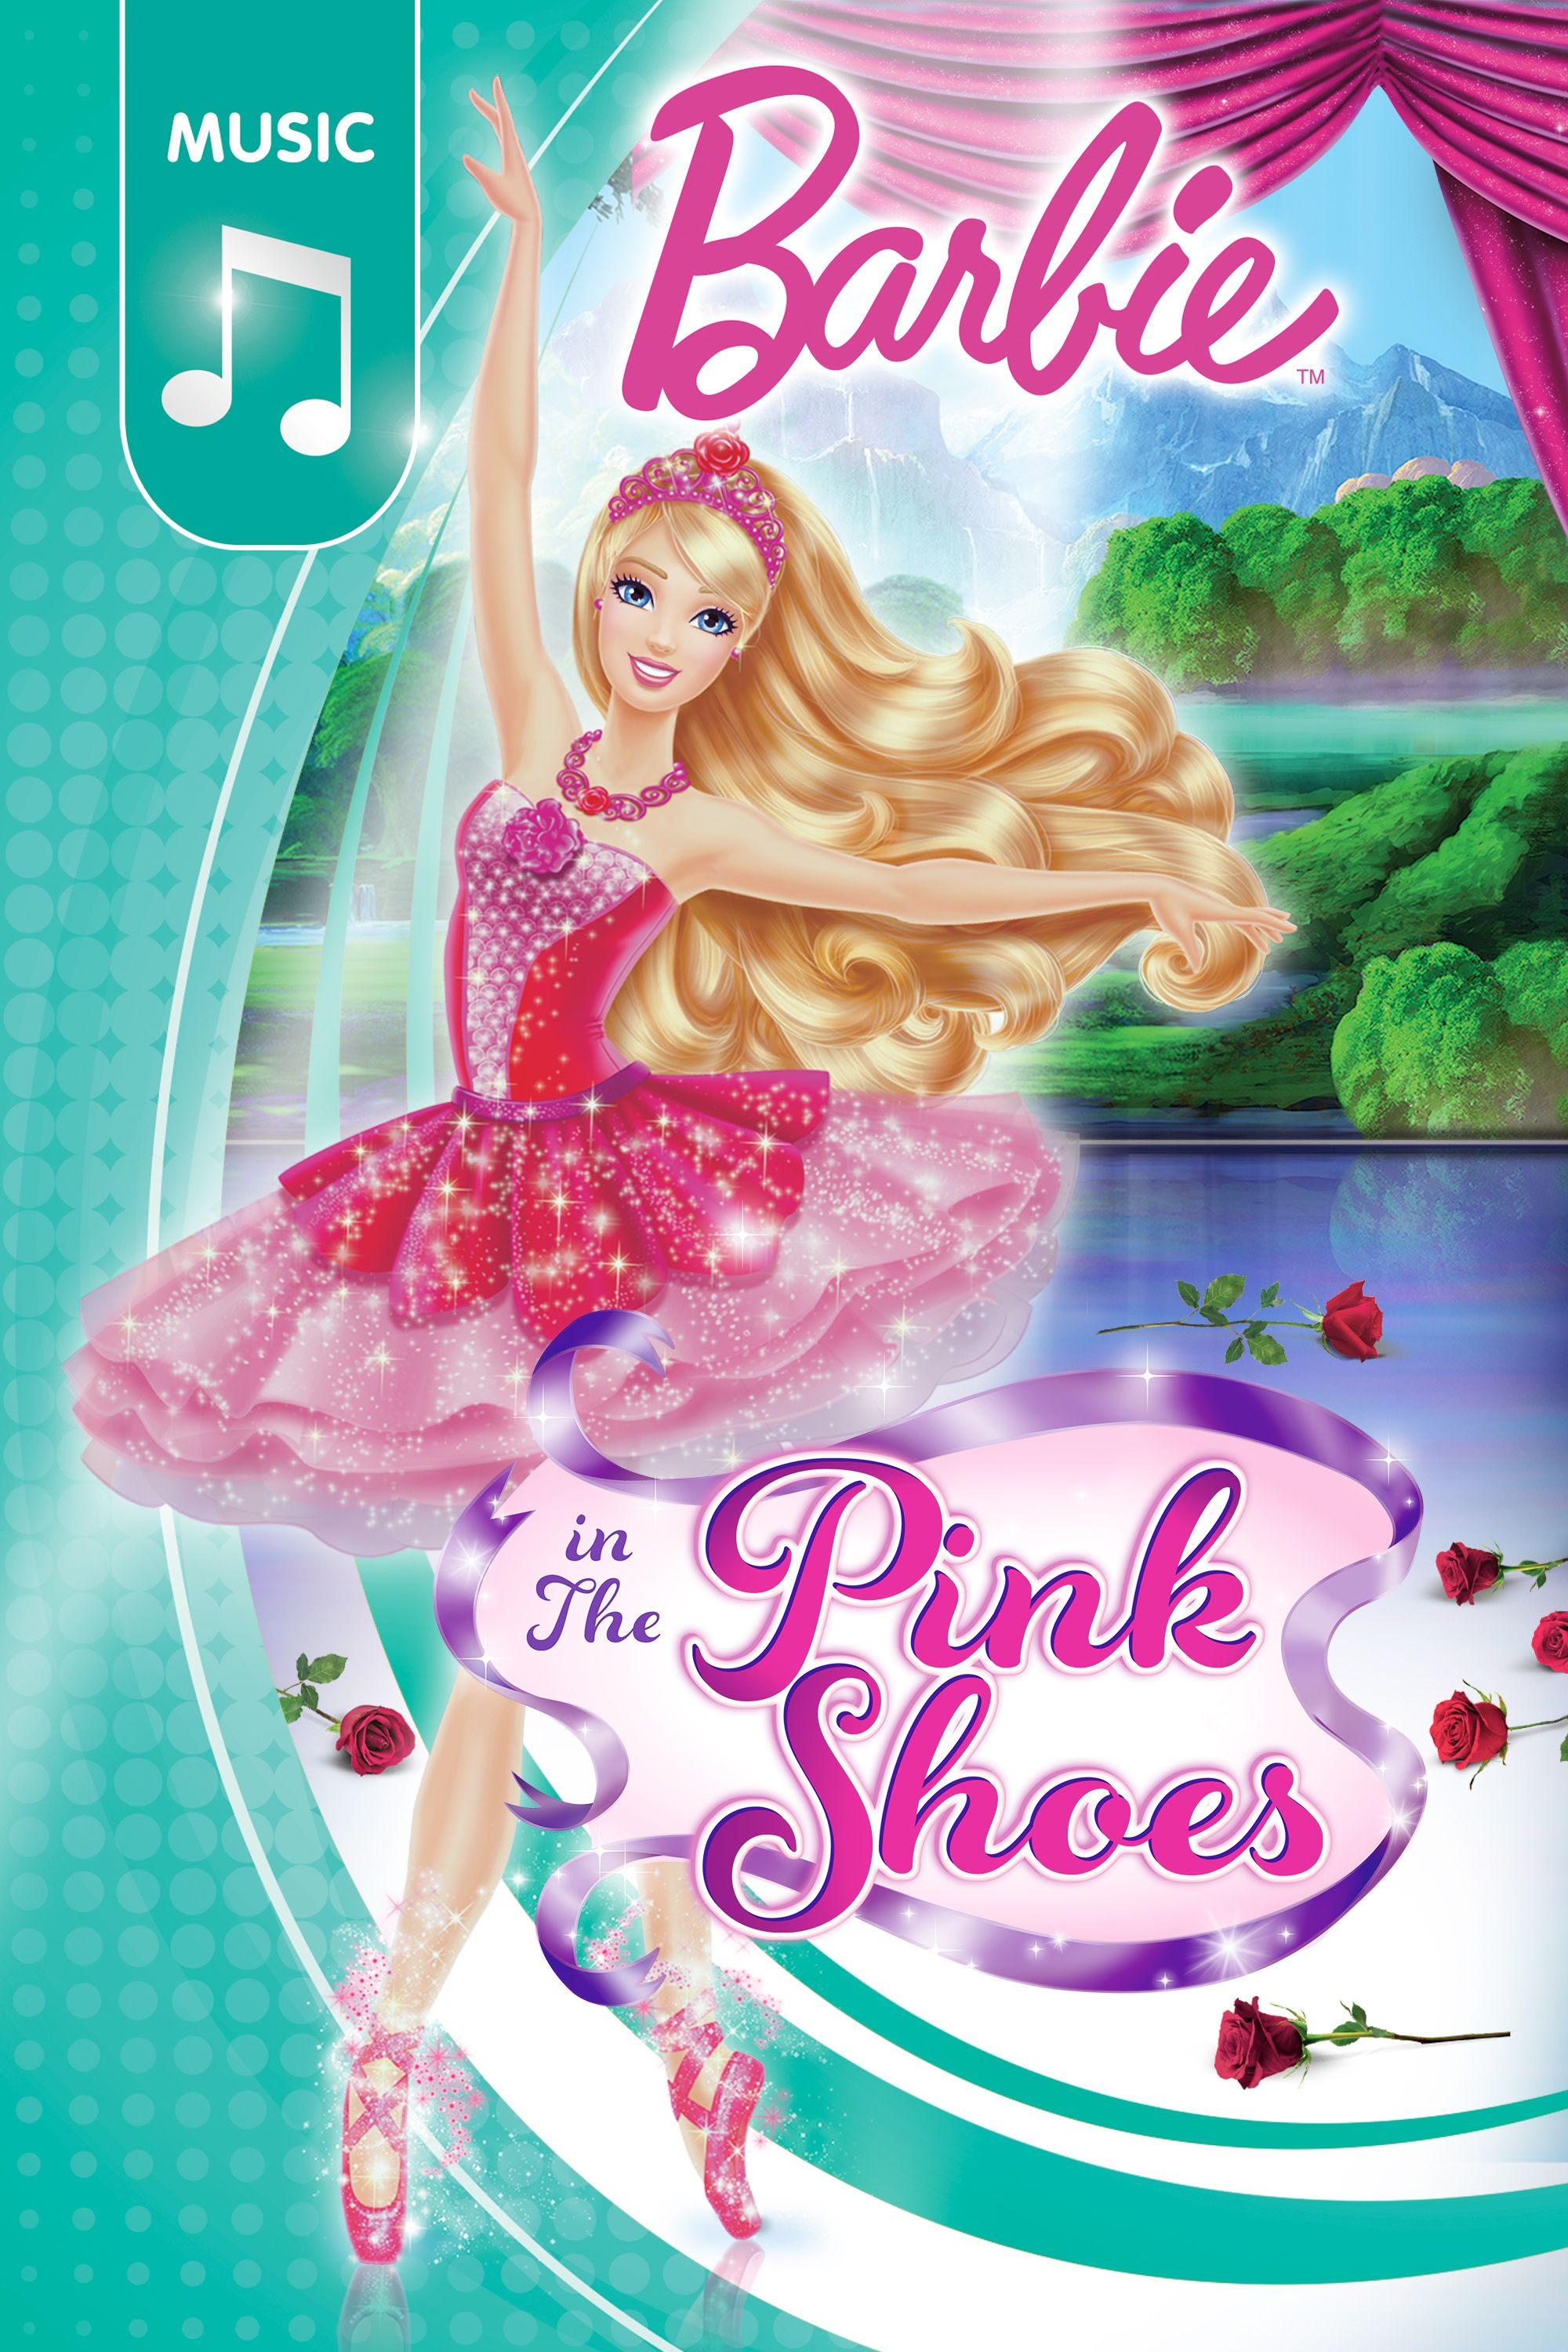 barbie in the pink shoes full movie free